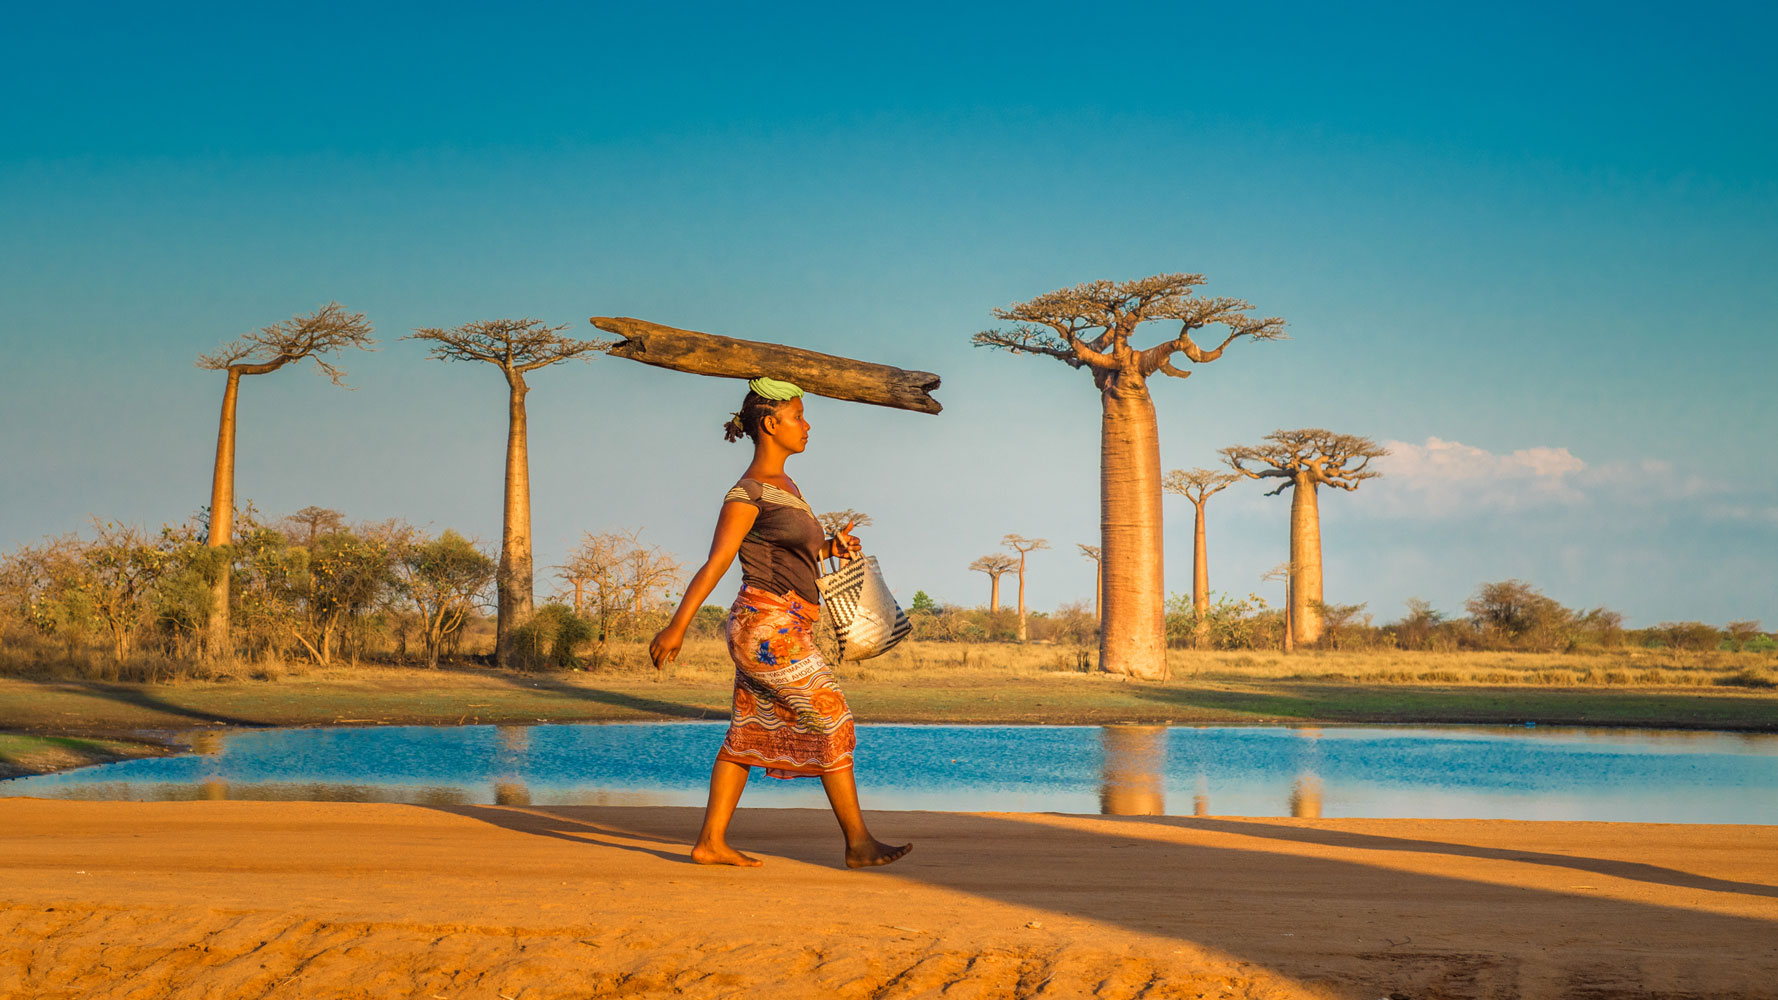 "<div class=""meta image-caption""><div class=""origin-logo origin-image none""><span>none</span></div><span class=""caption-text"">A Woman carries a log on her head on Avenue of the Baobabs, Madagascar. (Shutterstock)</span></div>"